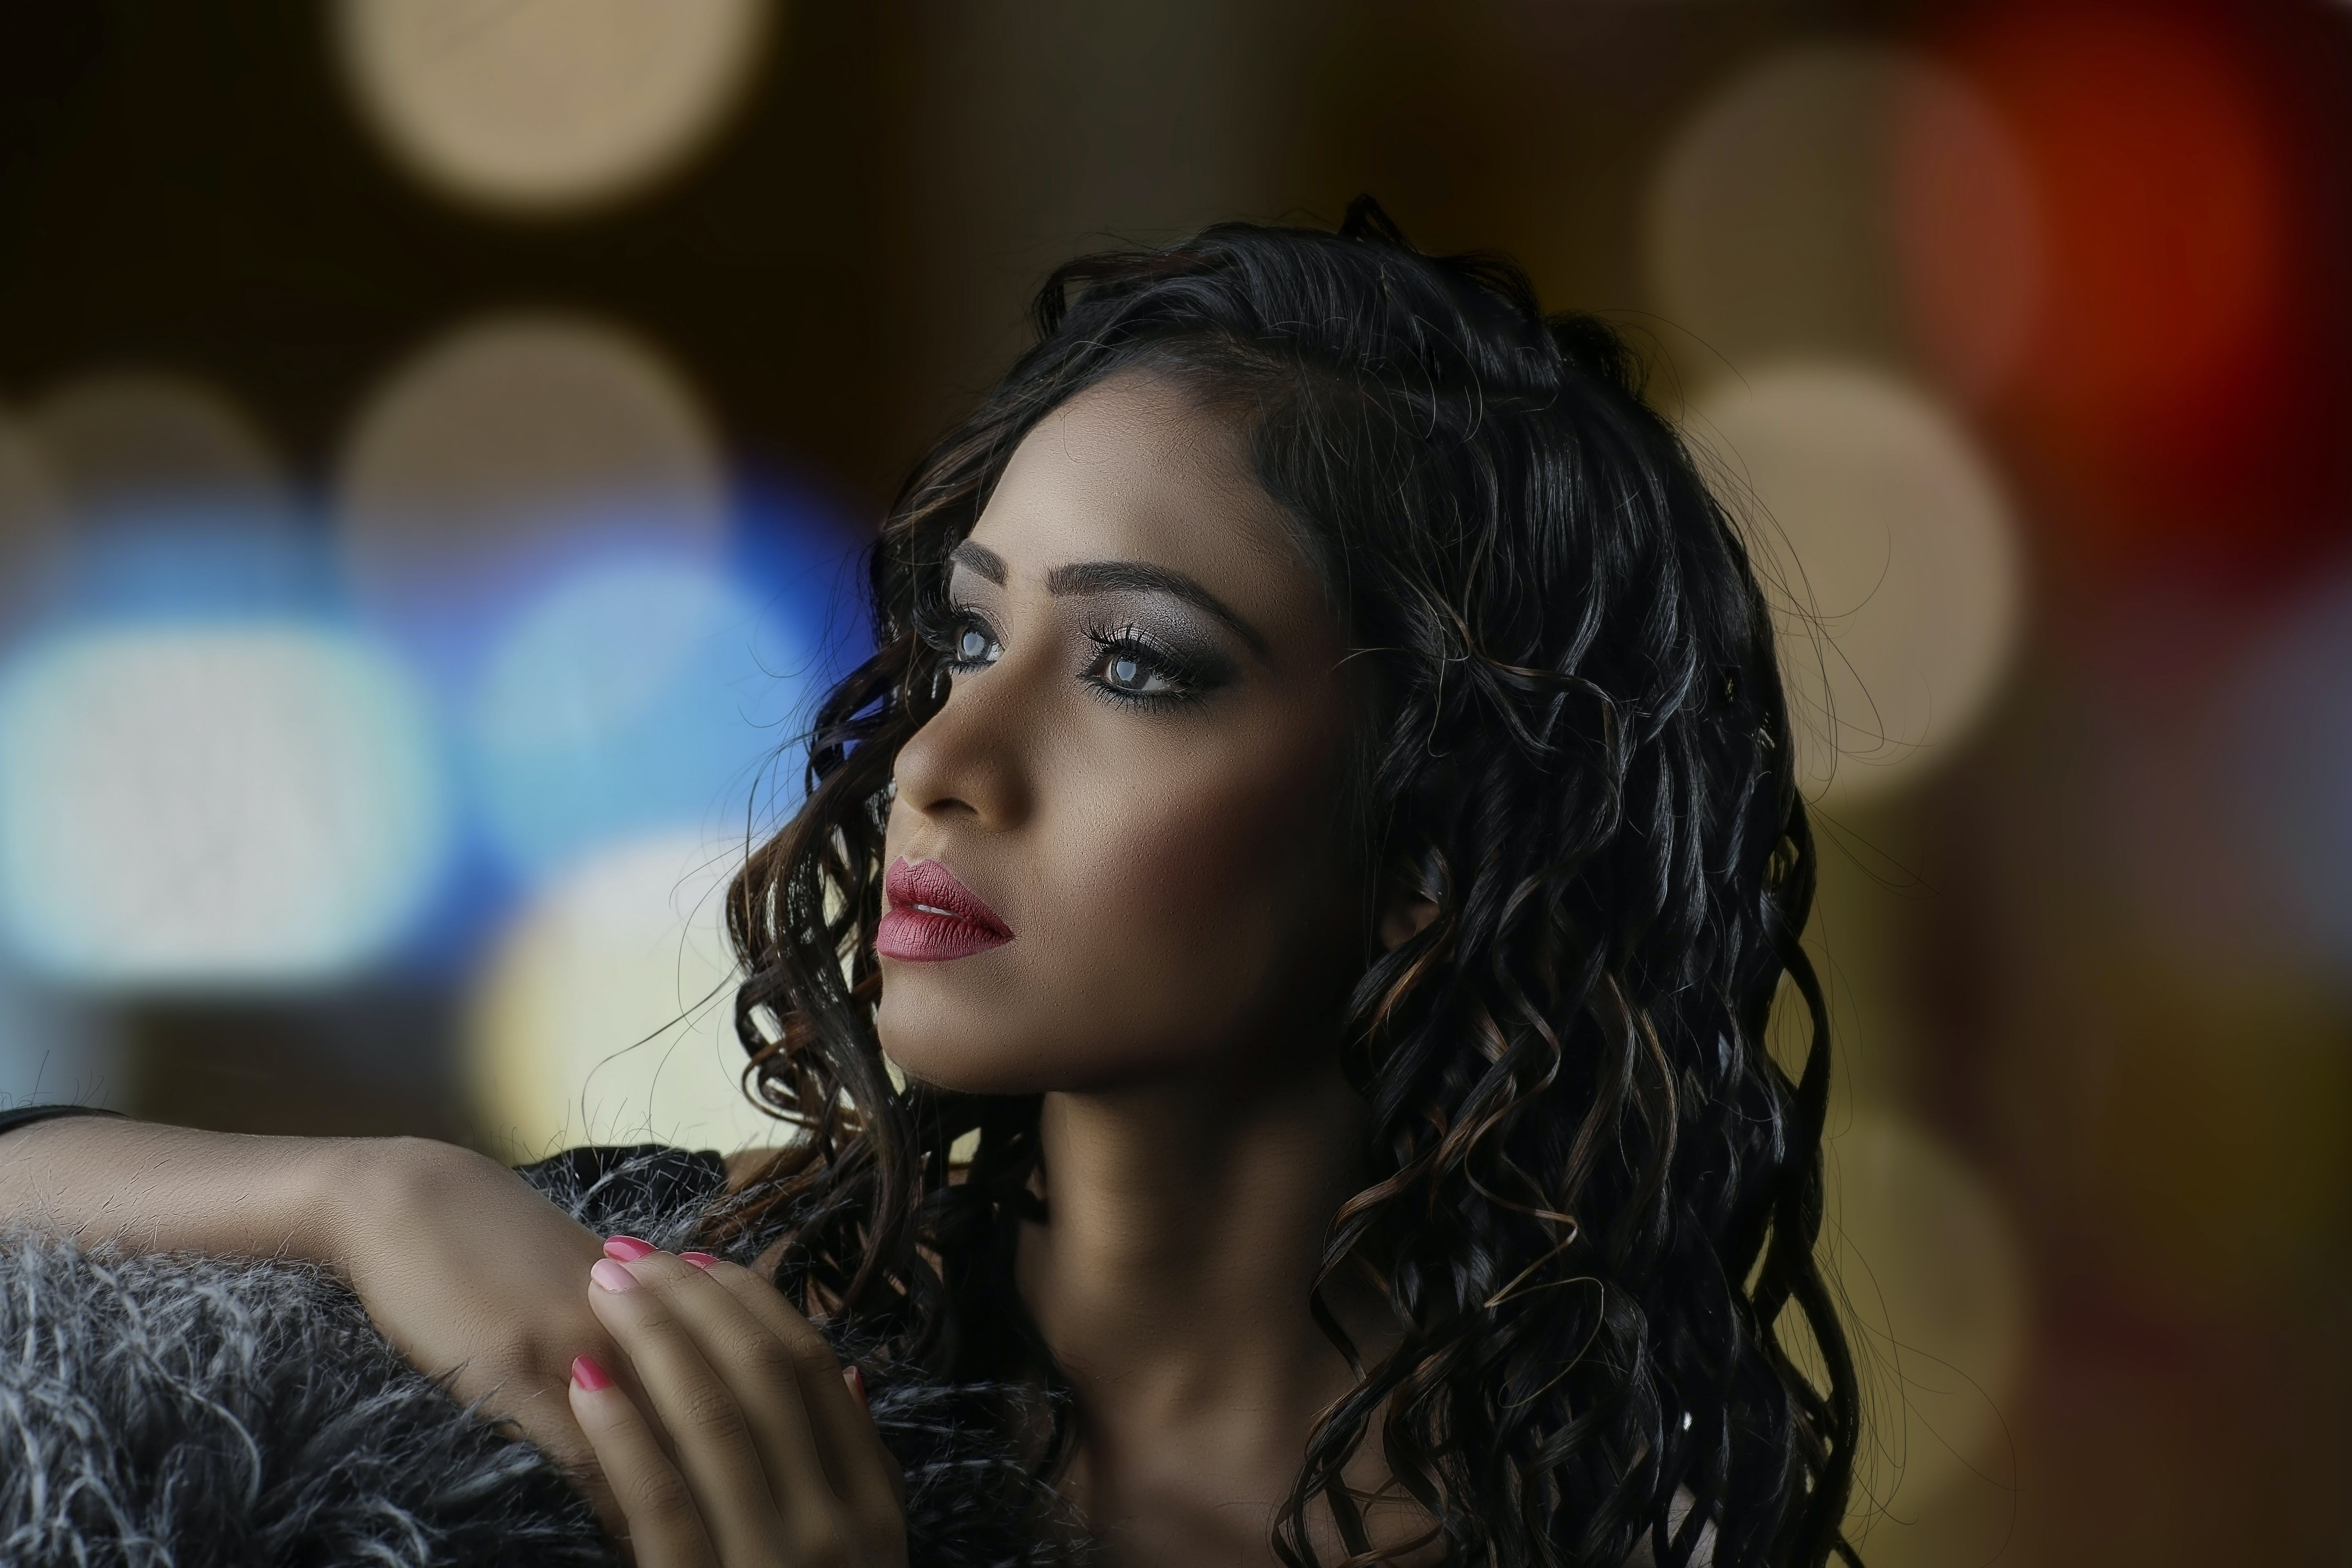 Bokeh Photography and Portrait of Curly-haired Woman